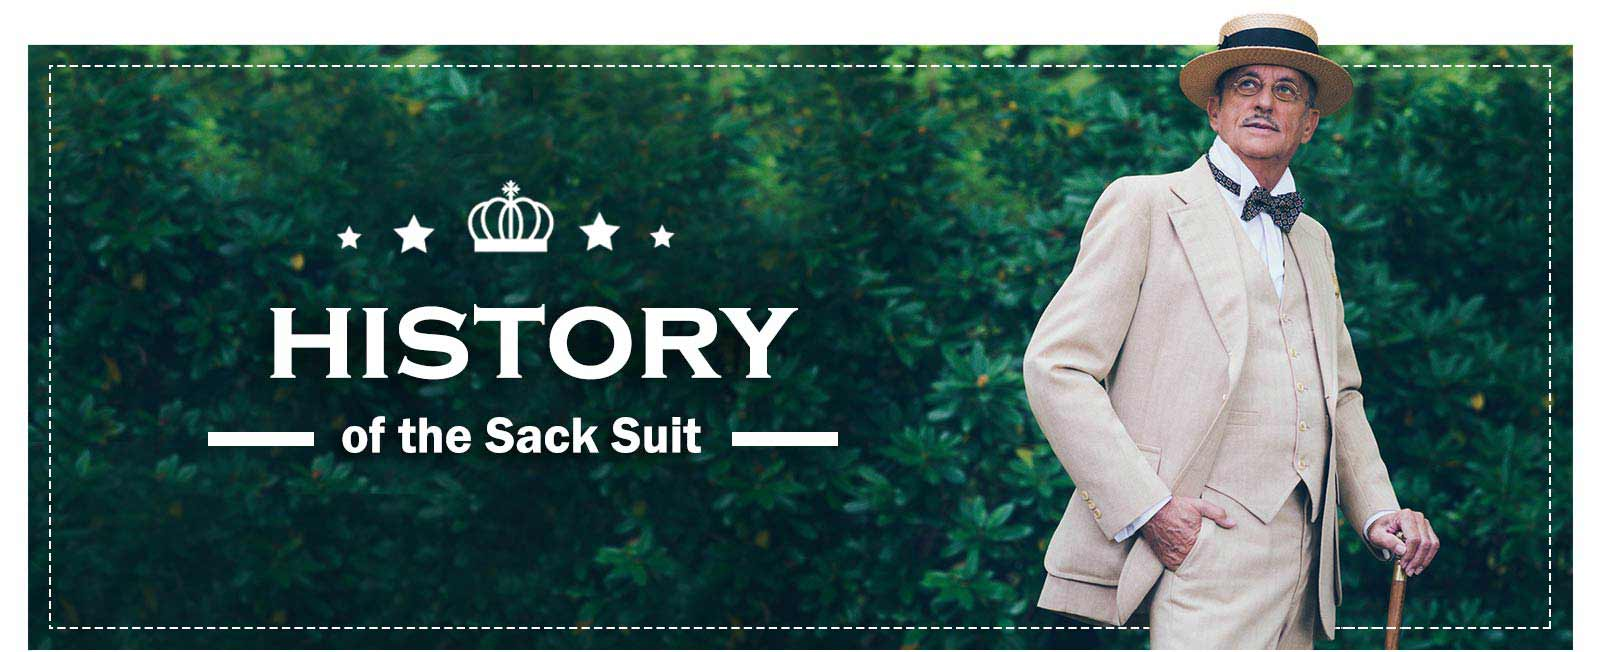 History of the sack suit